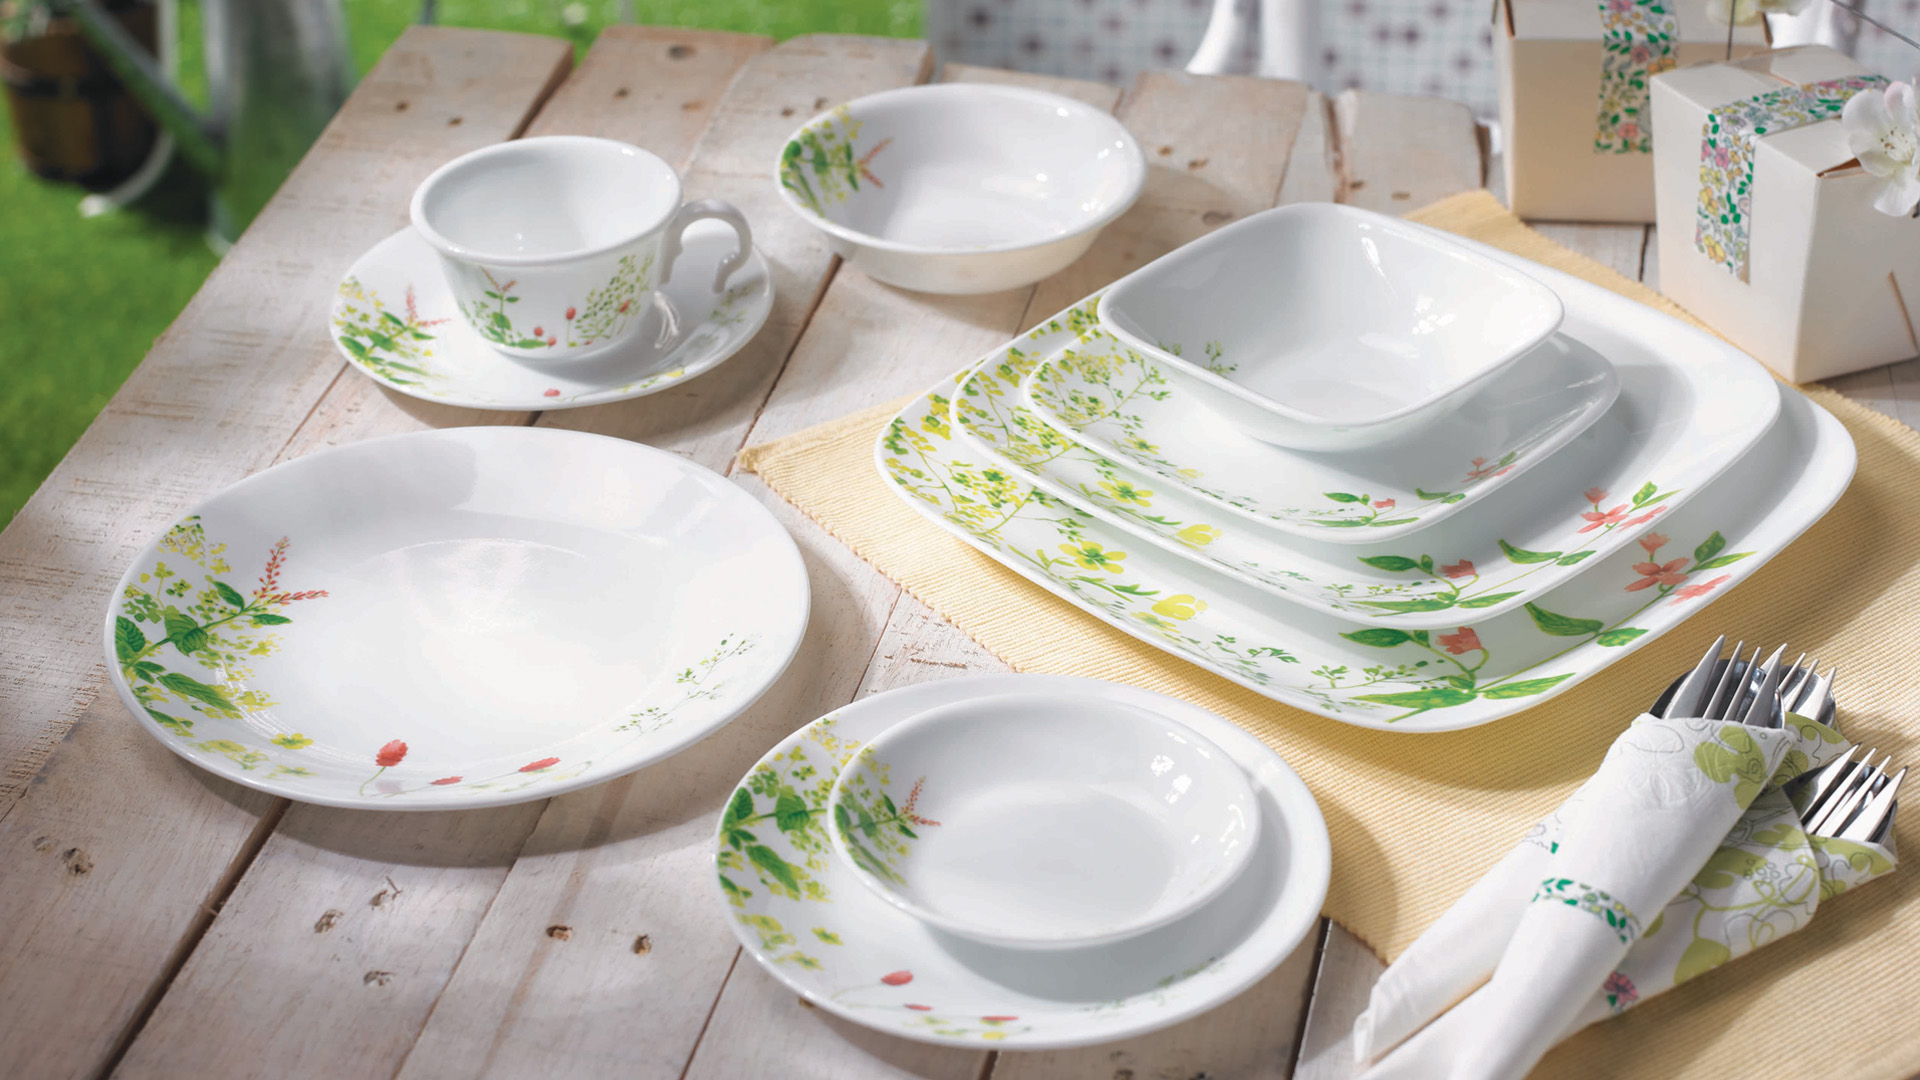 world kitchen corelle